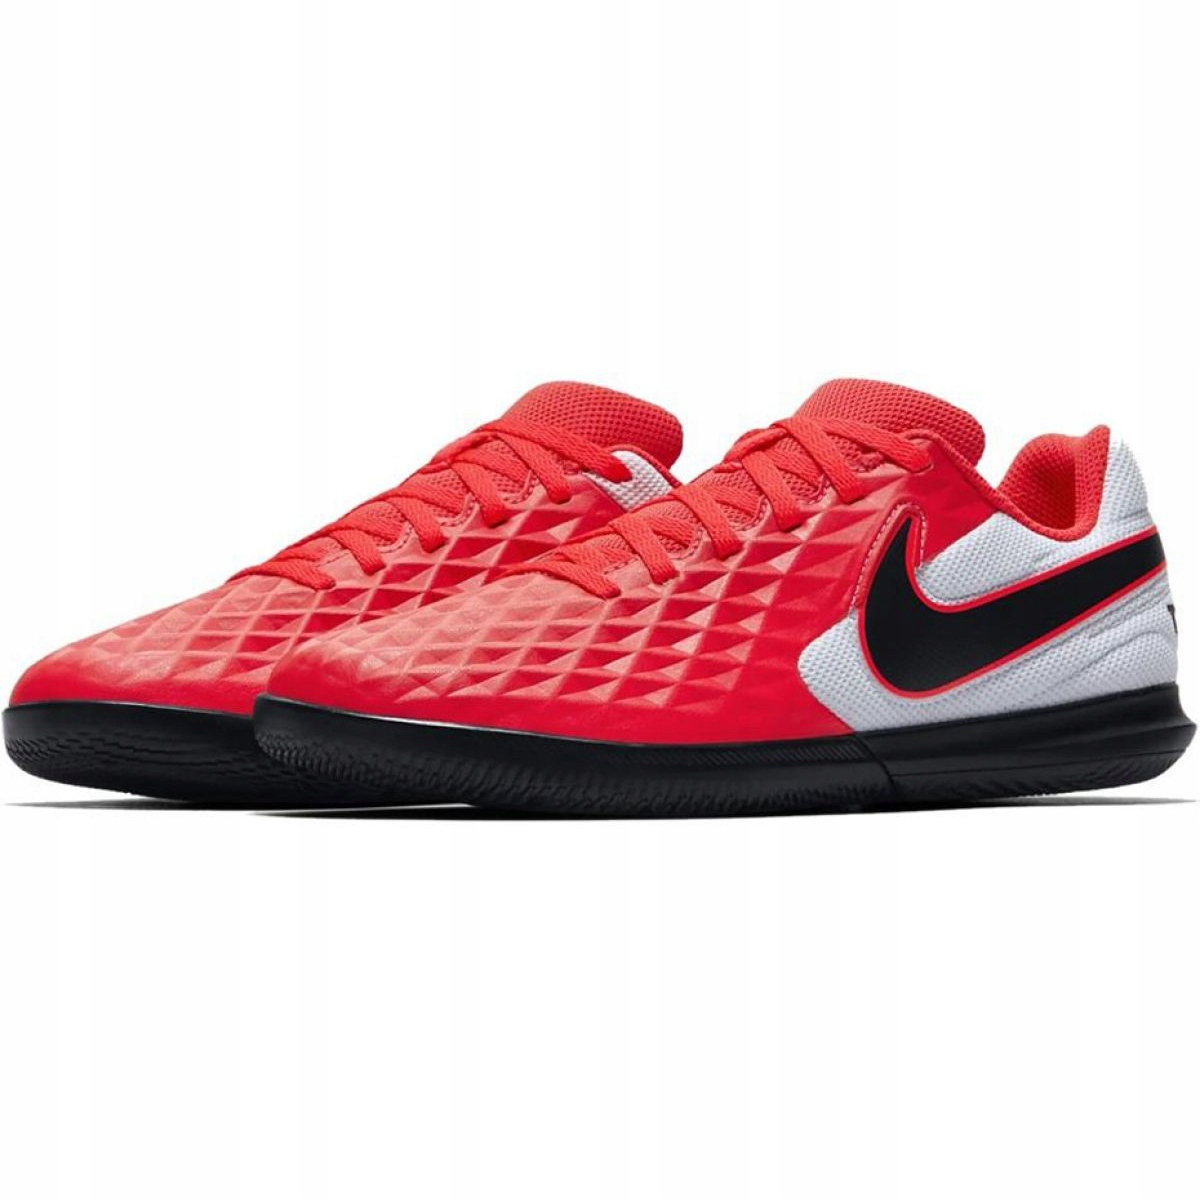 servilleta Envolver Seguro  Nike Tiempo Legend 8 Club Ic Jr AT5882-606 indoor shoes red multicolored -  ButyModne.pl